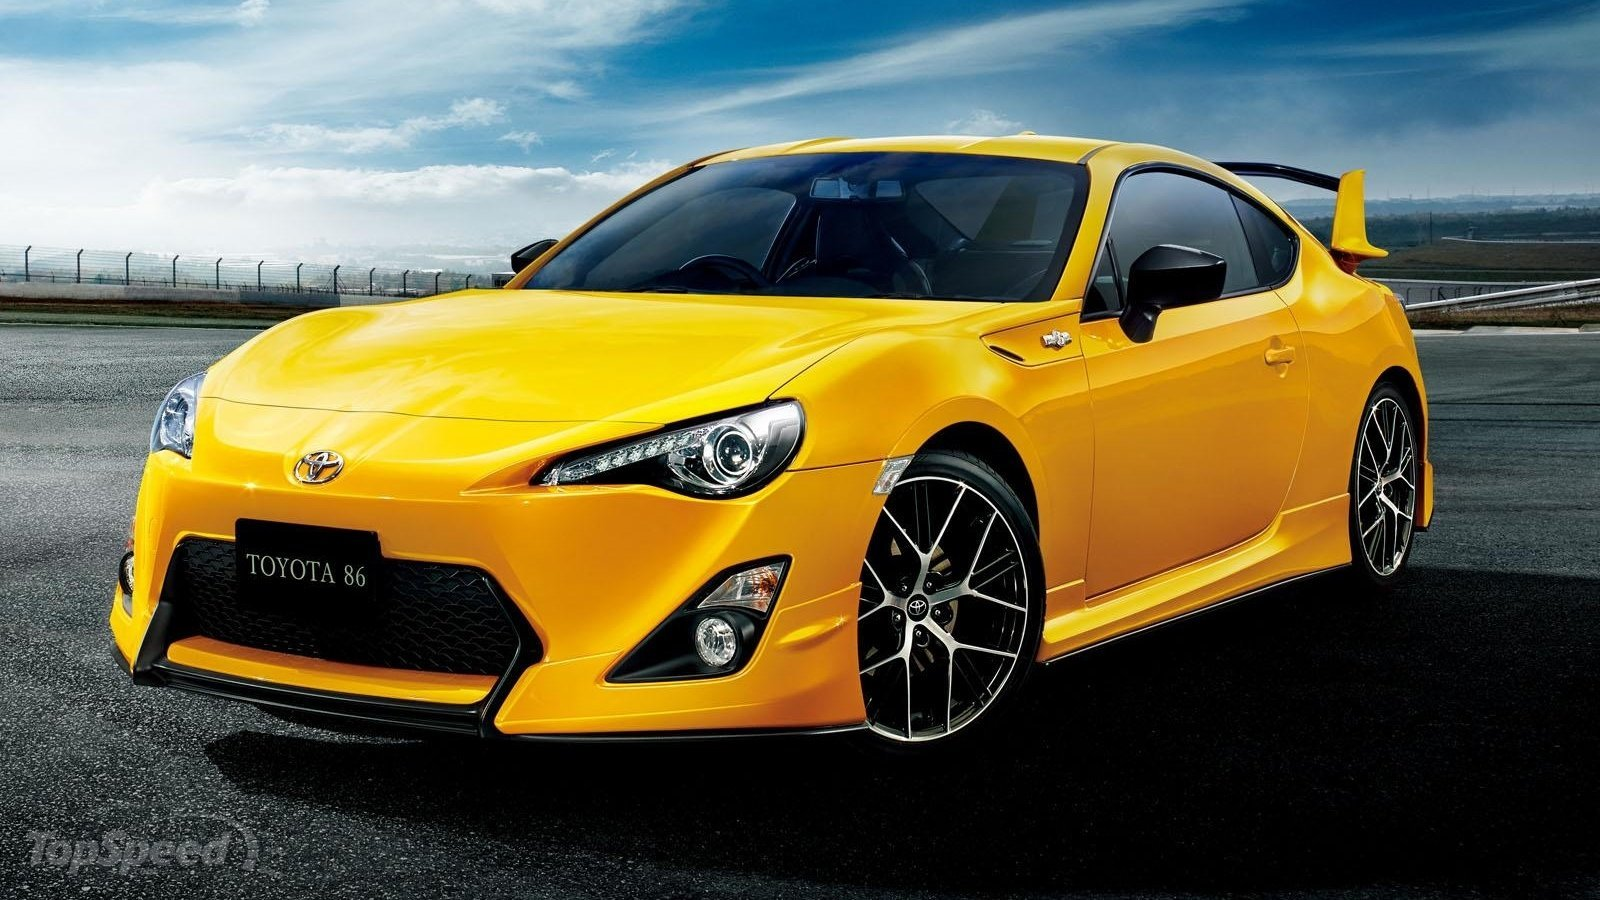 2015 Toyota 86 Yellow Limited Top Speed